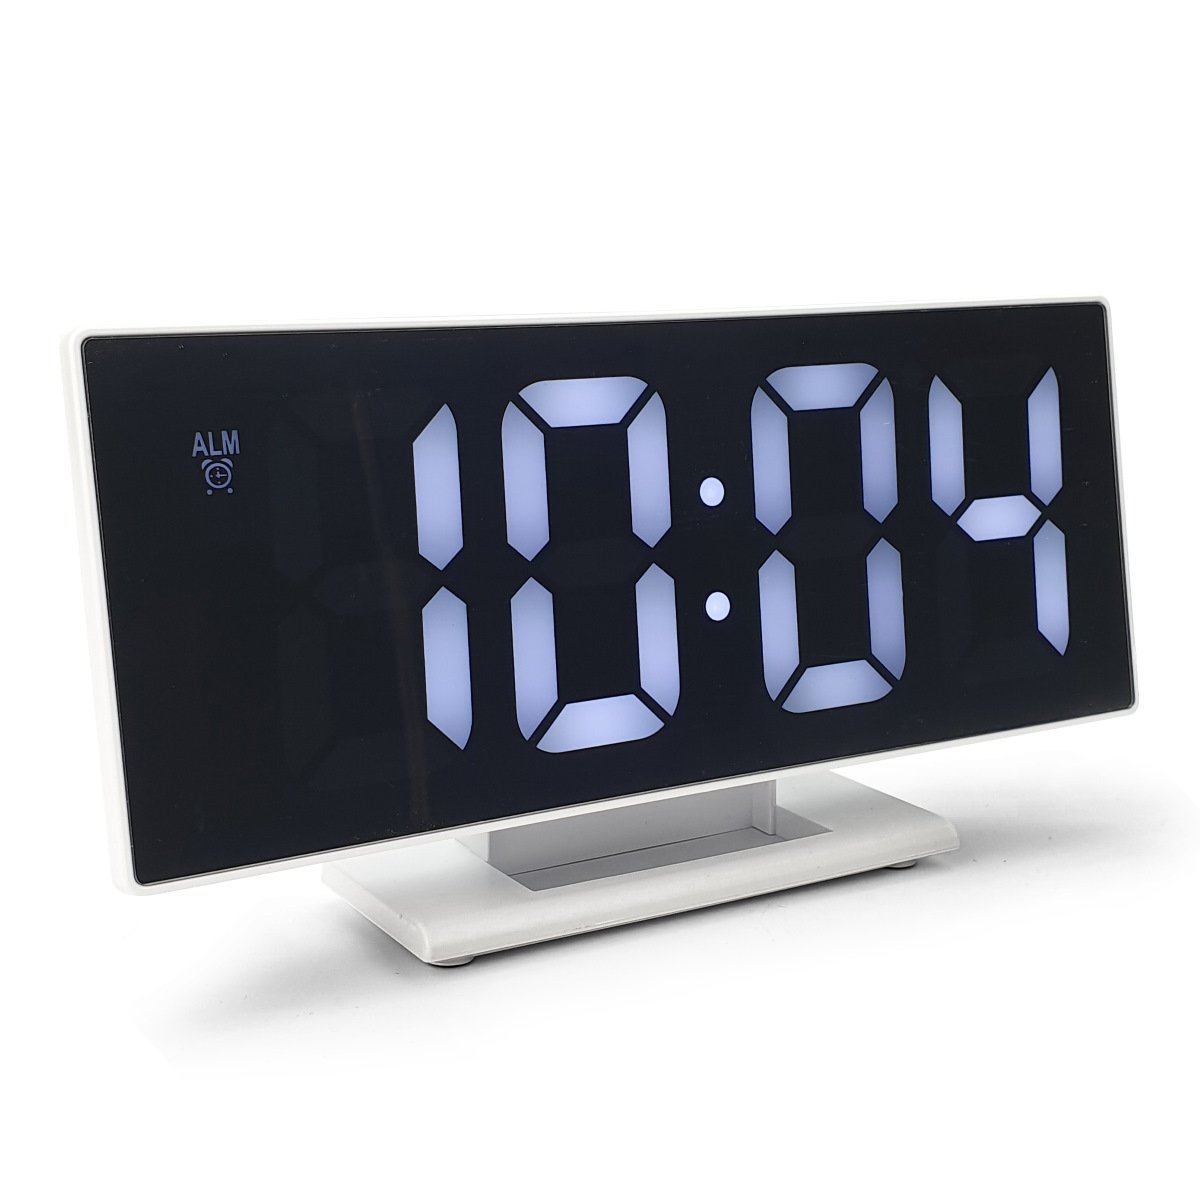 Checkmate Hunter Mirrored Face LCD Alarm Clock White 19cm VGW 3618 WHI 1